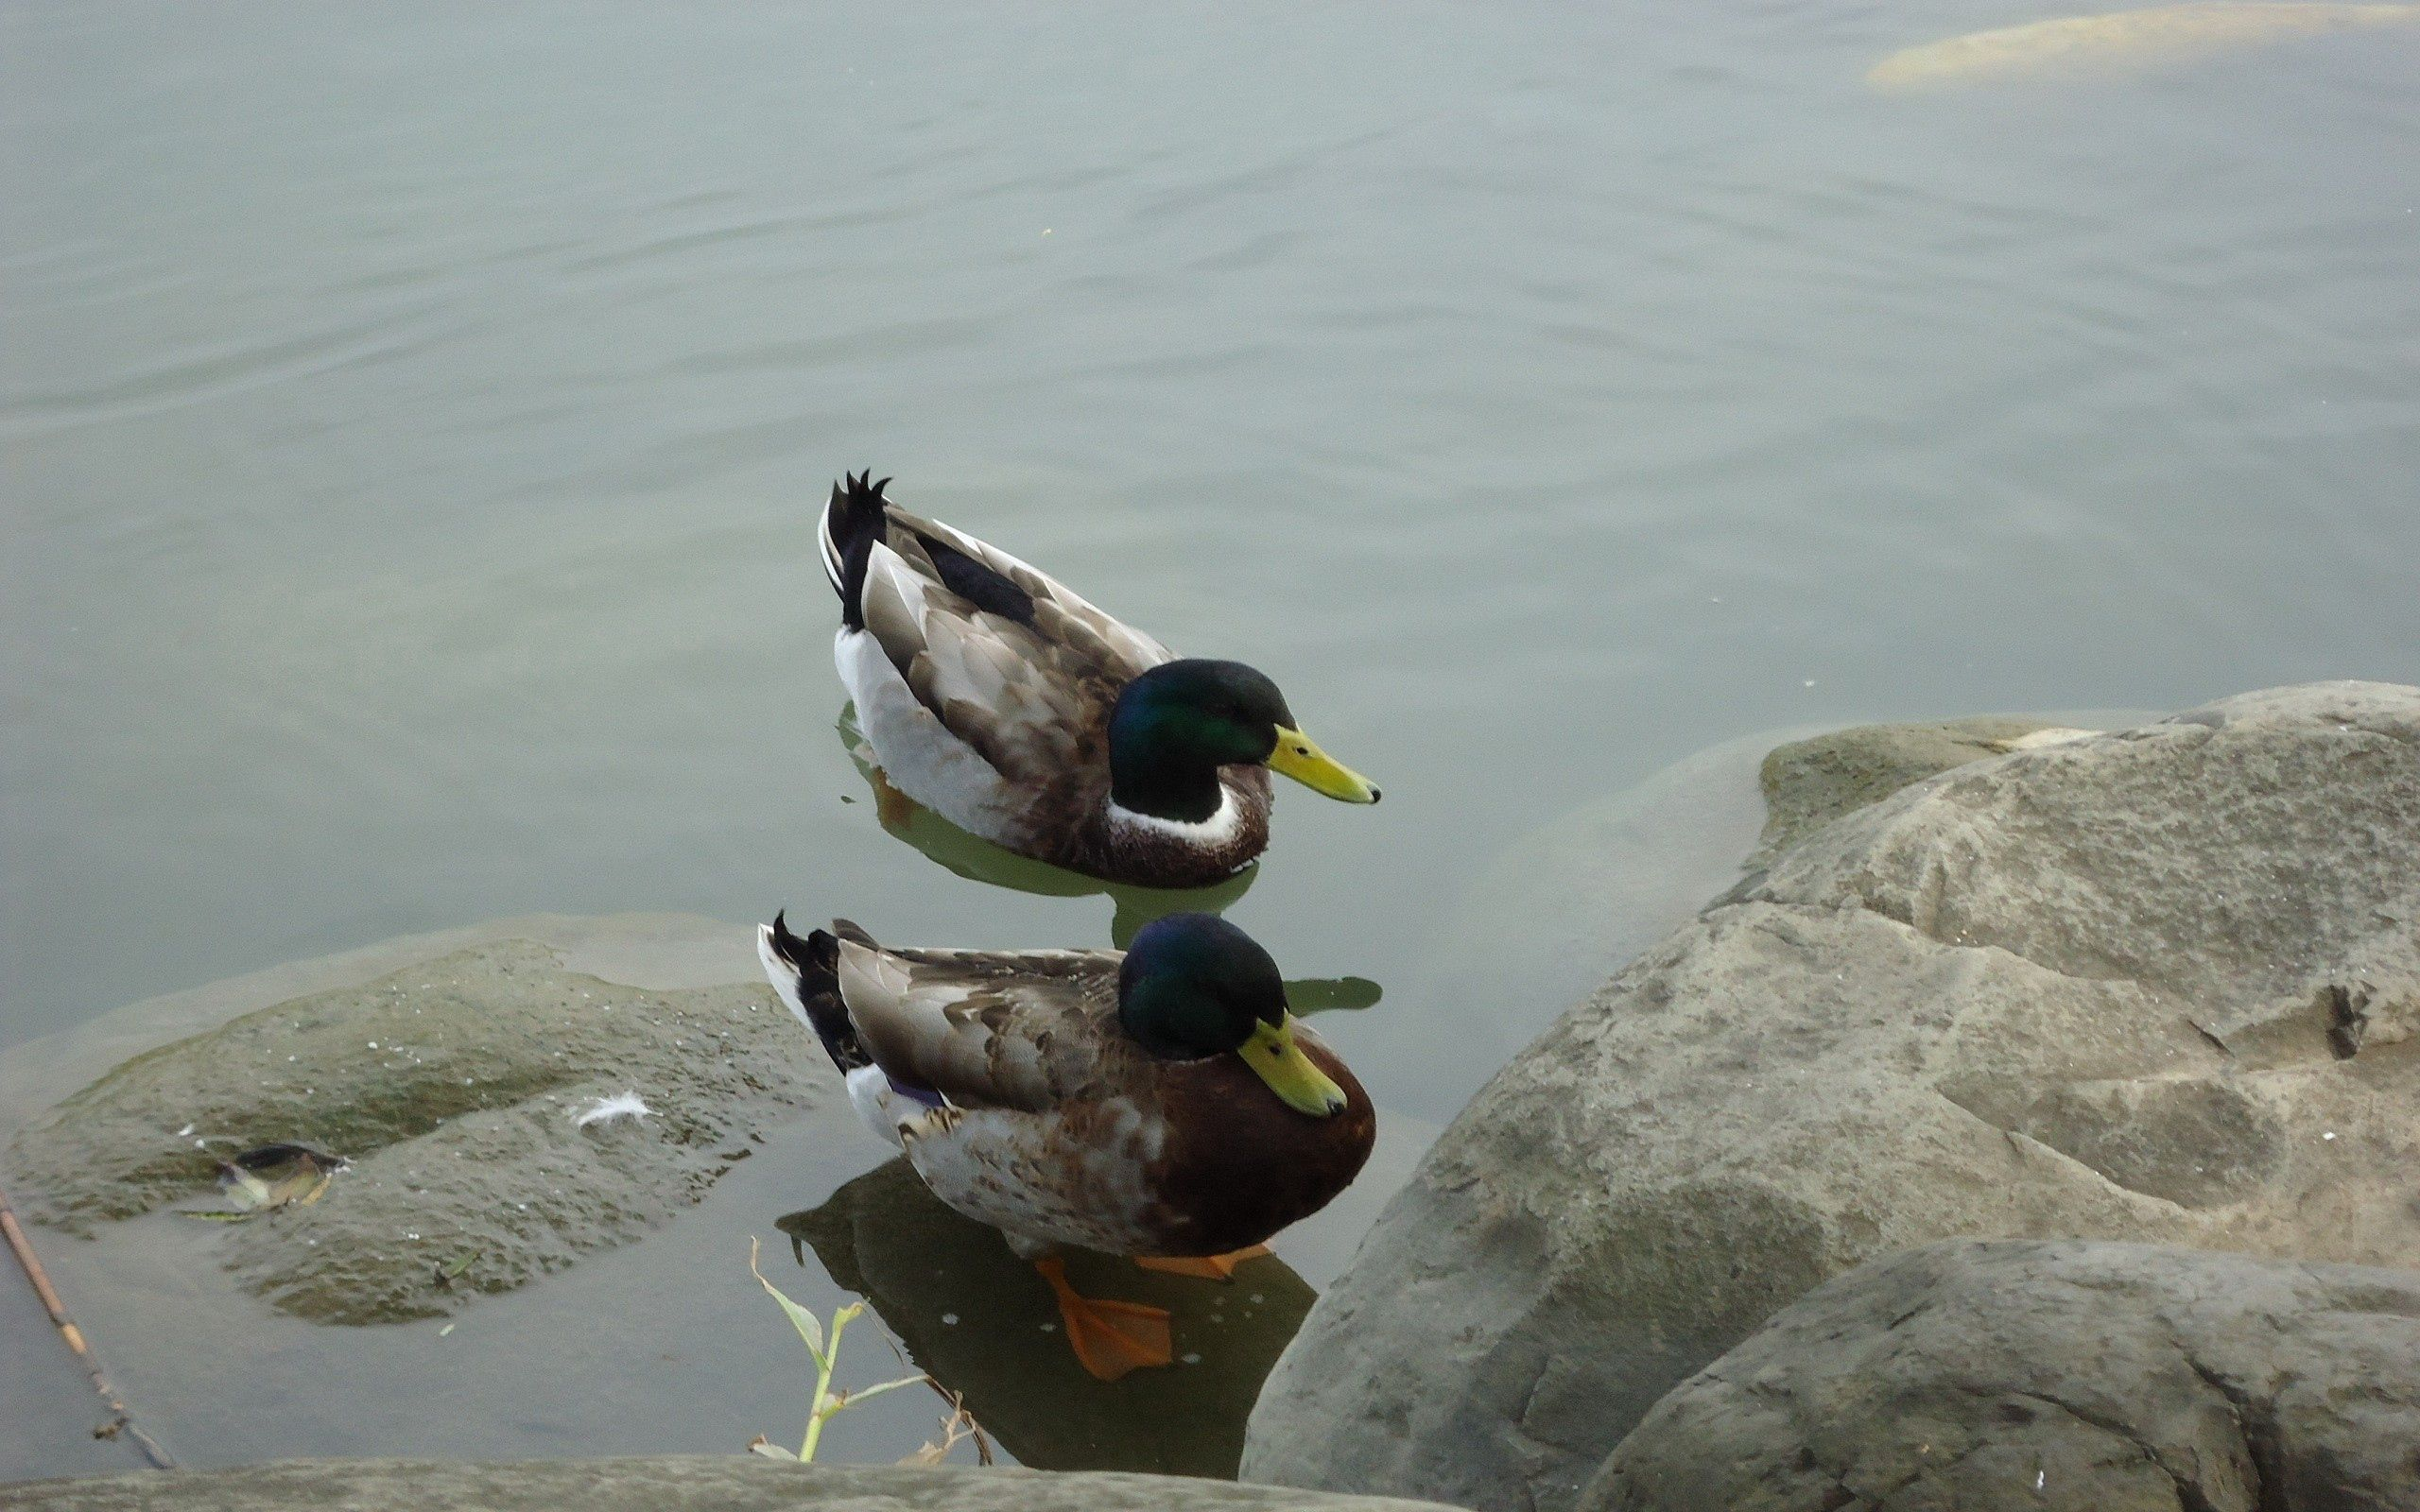 105452 download wallpaper Animals, Duck, Lake, Stones, To Swim, Swim screensavers and pictures for free